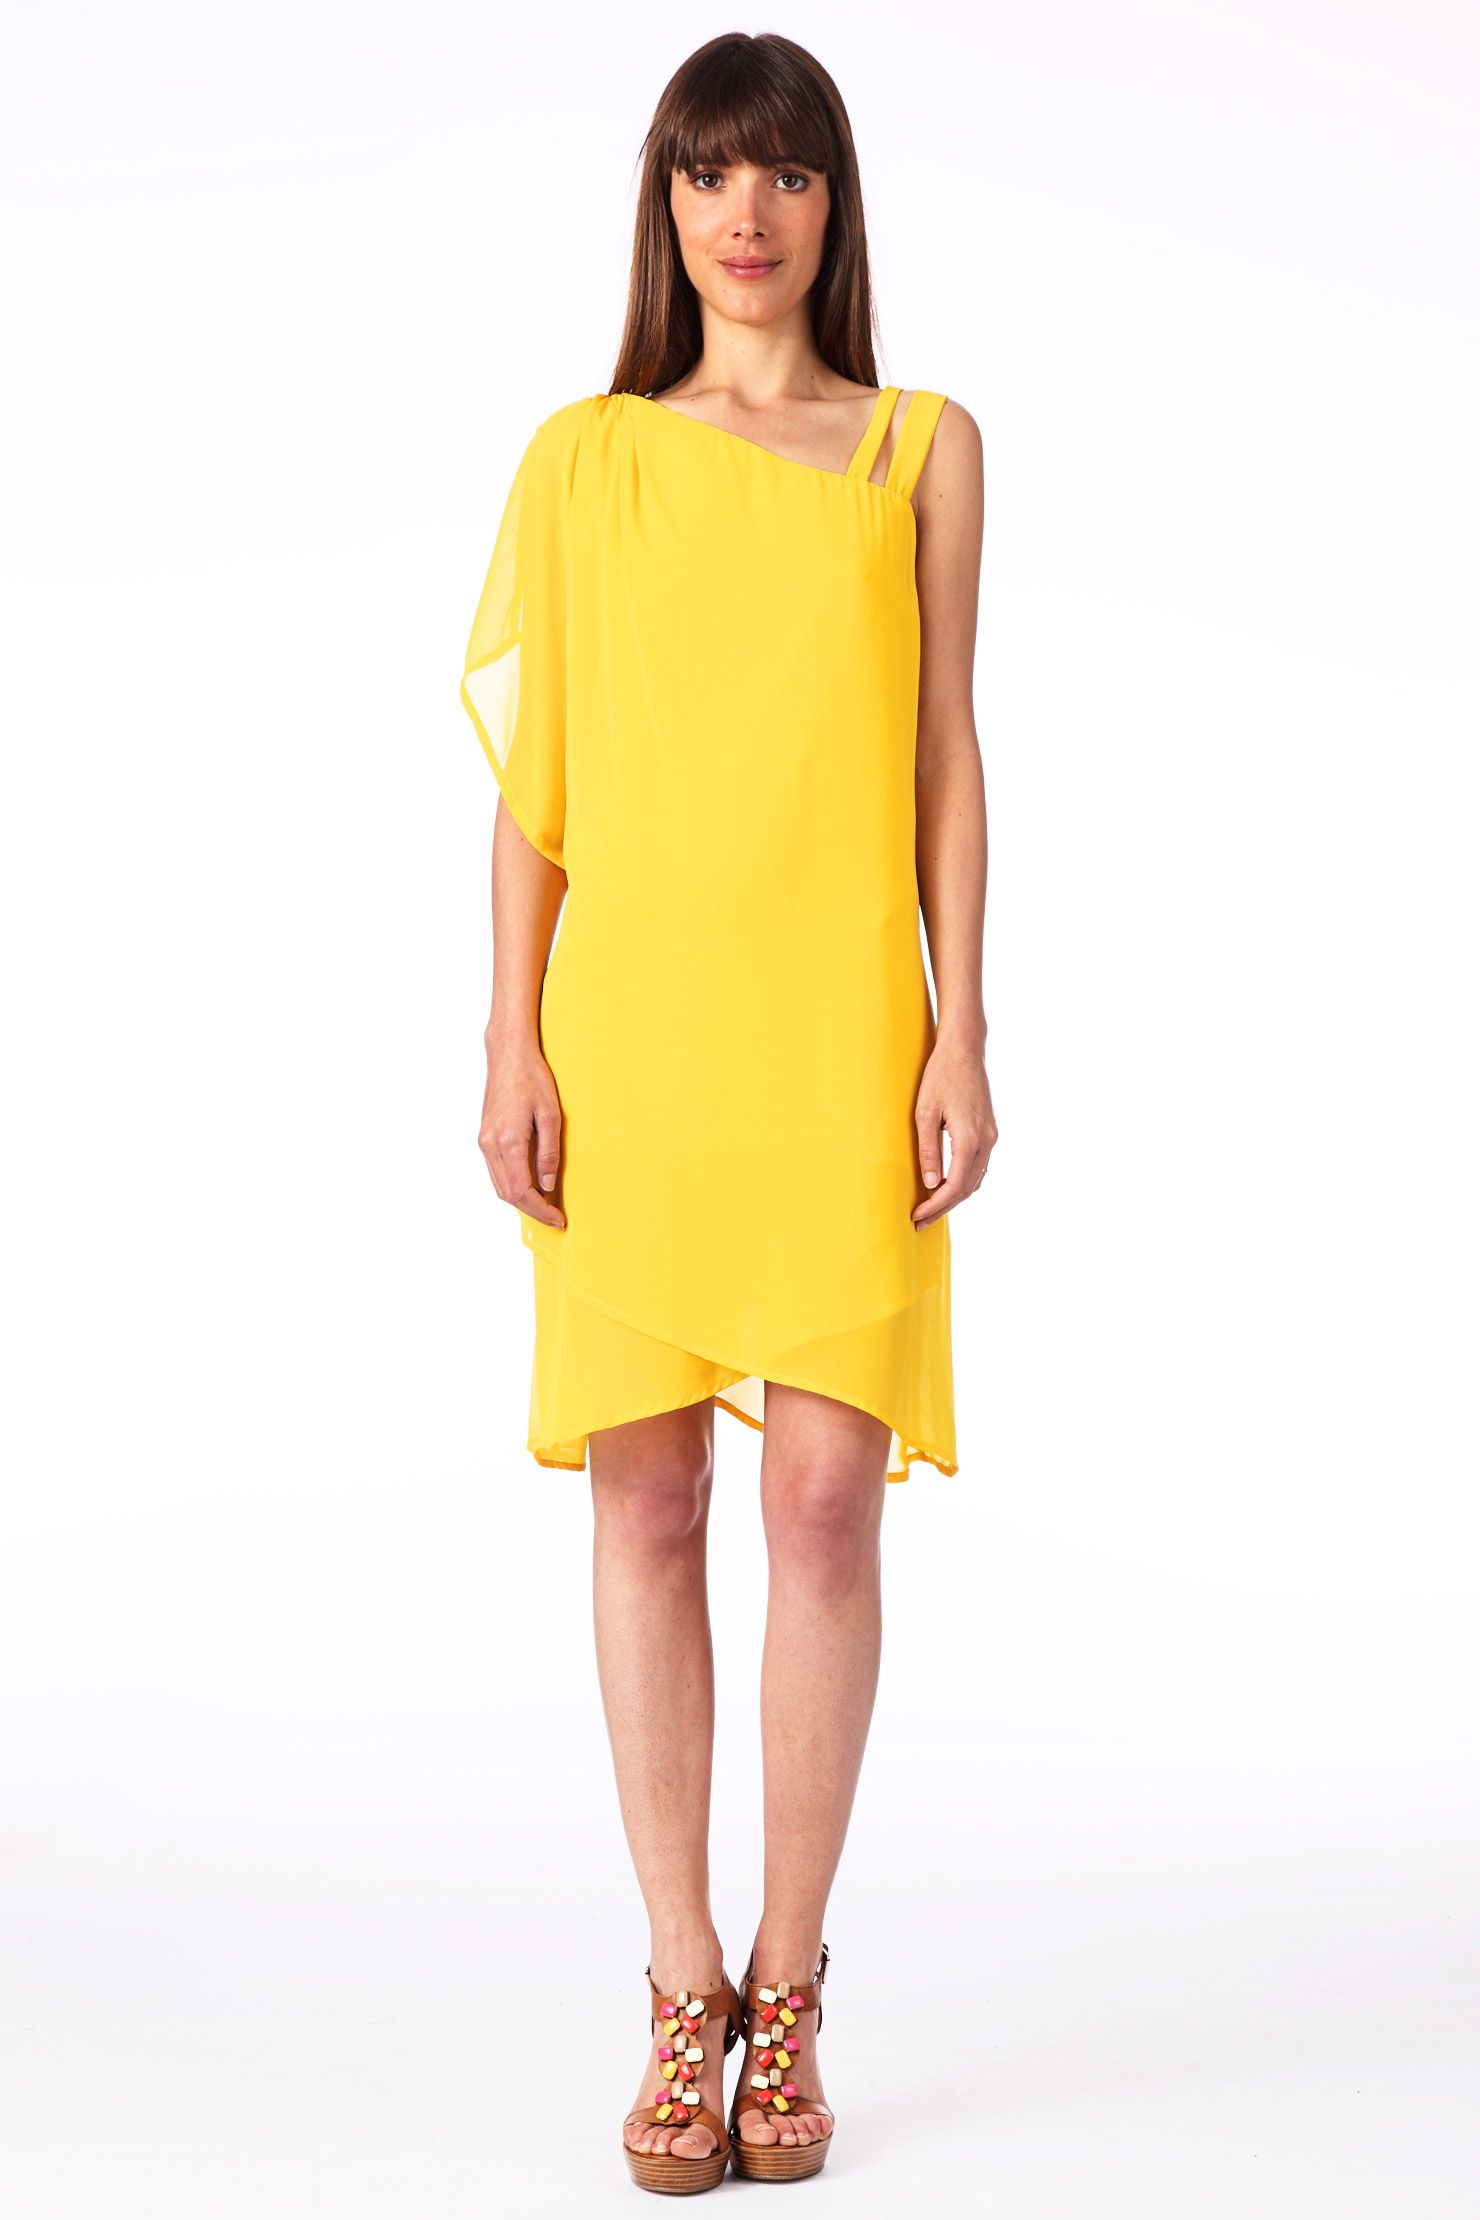 d40a393982269 Robe asymétrique Chris Jaune   Vero Moda   robes jaune   Robe, Moda ...